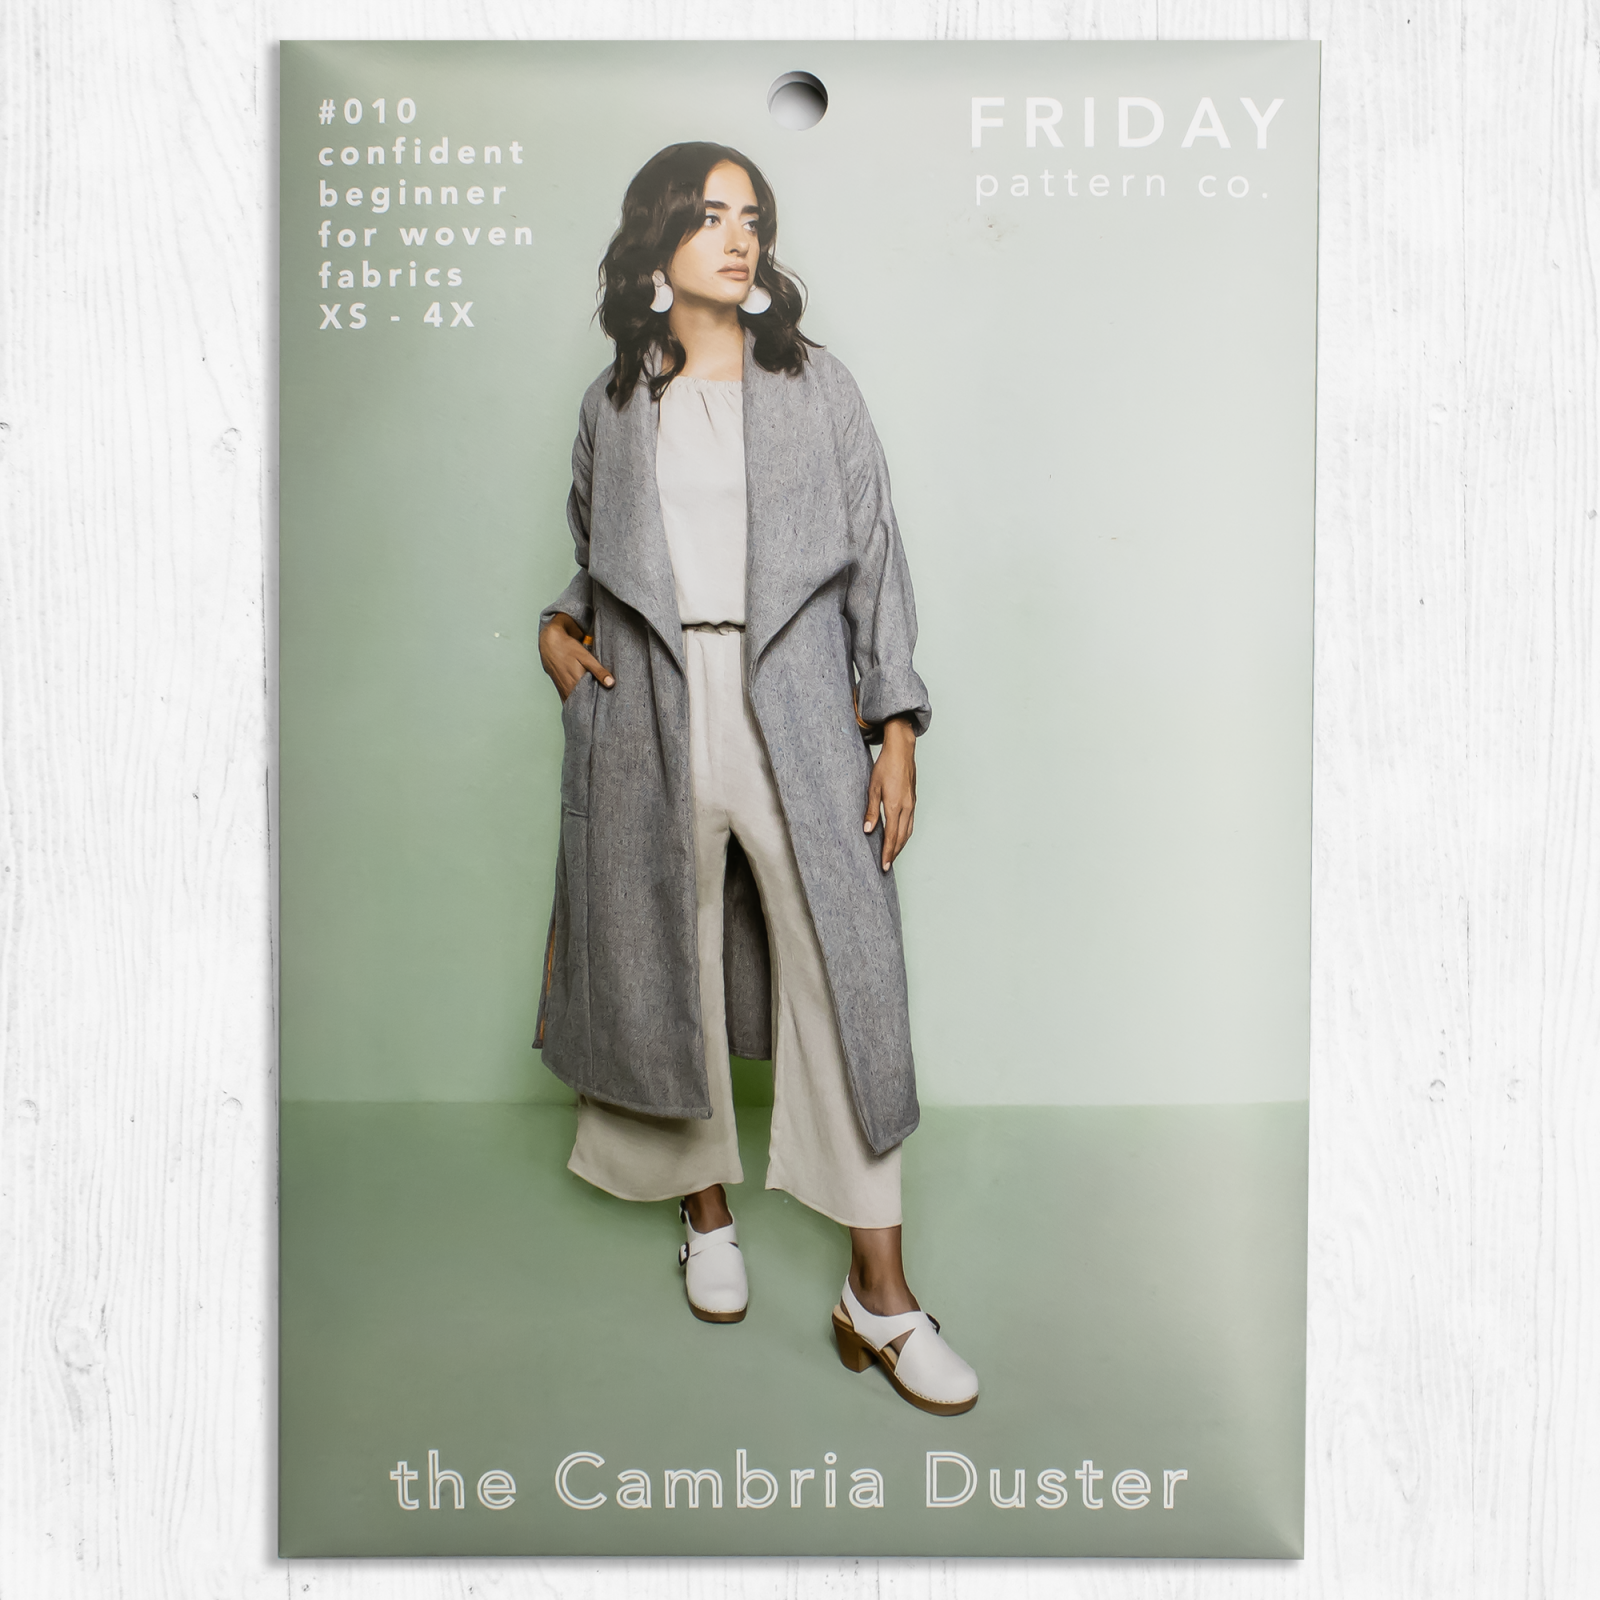 Friday Pattern Co. - The Cambria Duster